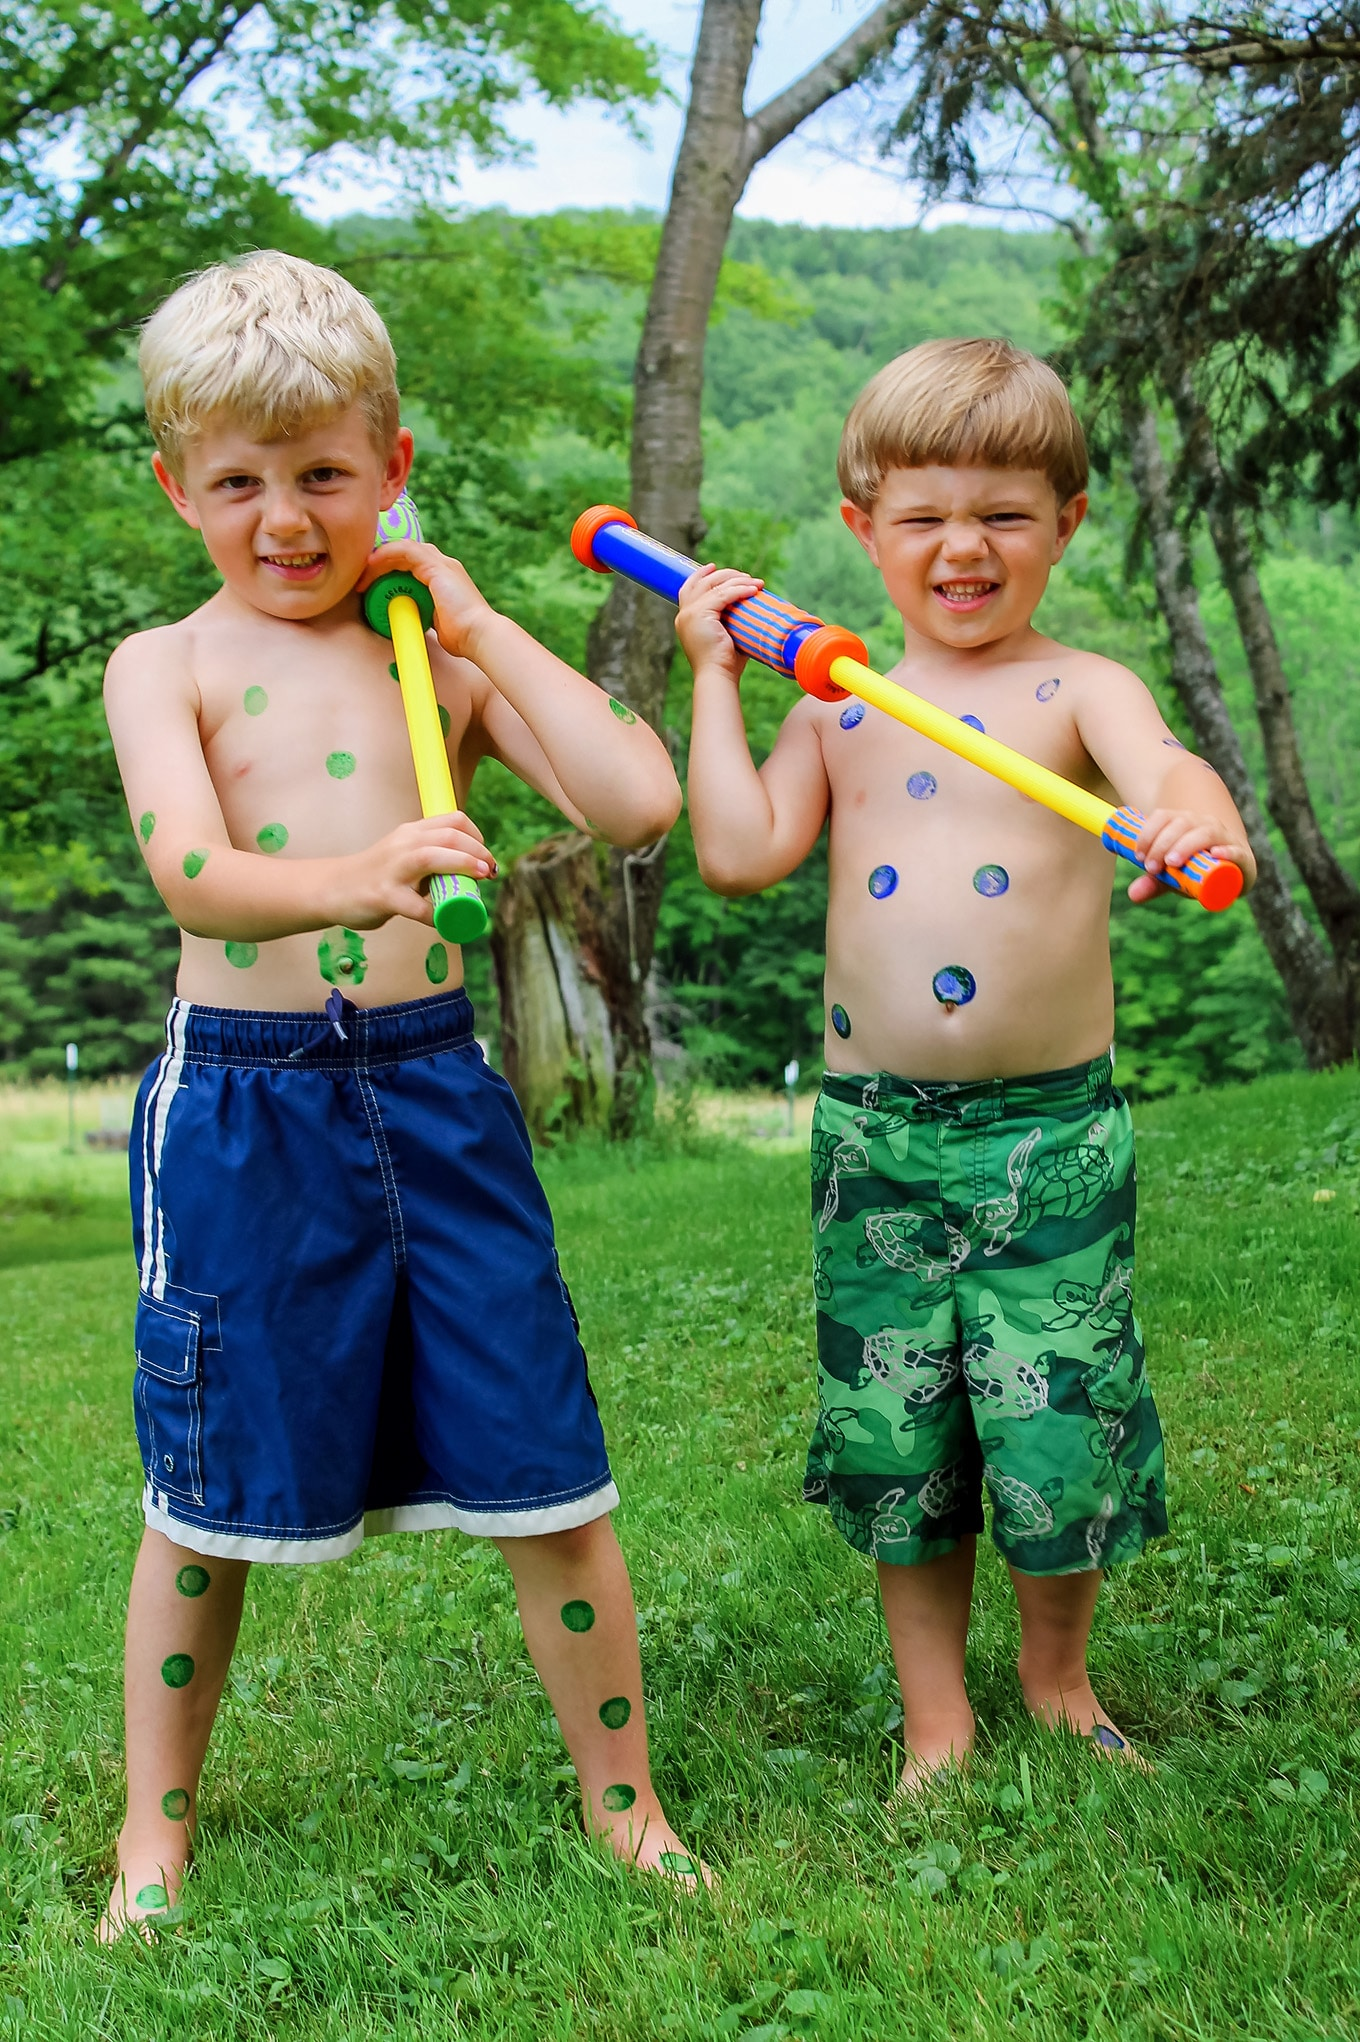 Two Children Ready for Water Blaster Games